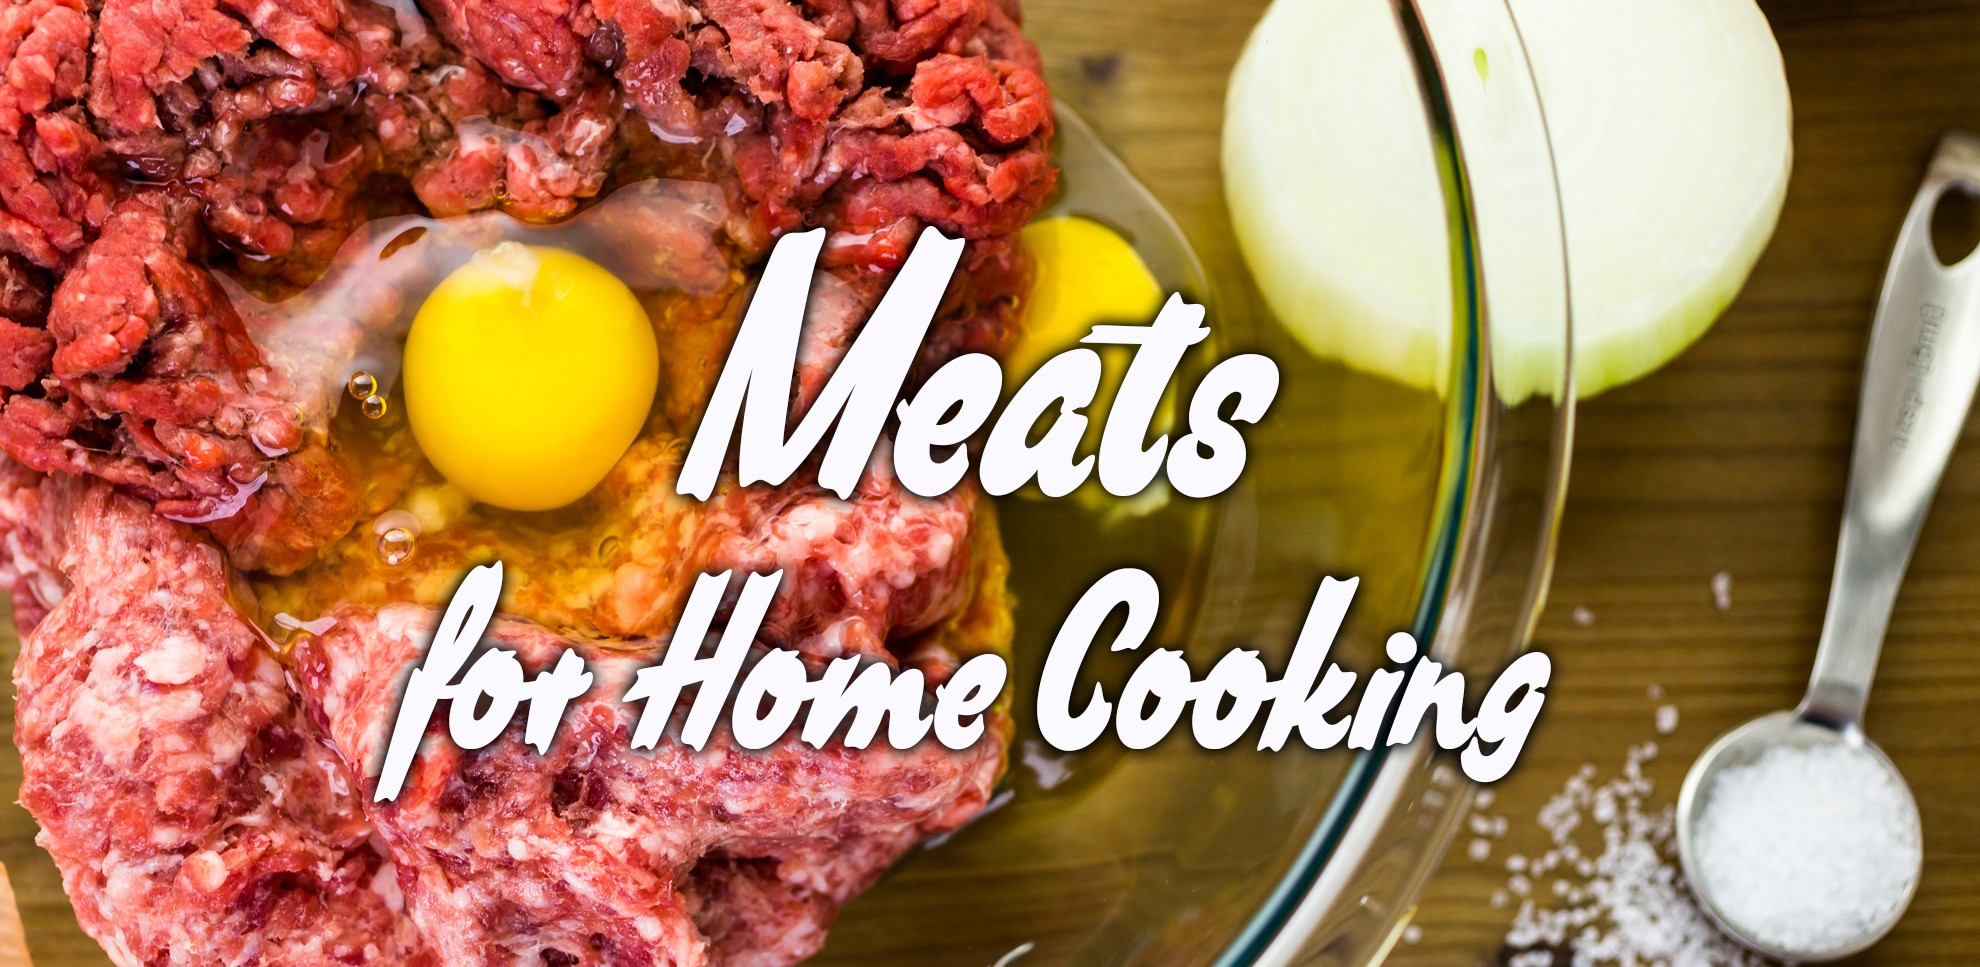 Home cooking made easy!